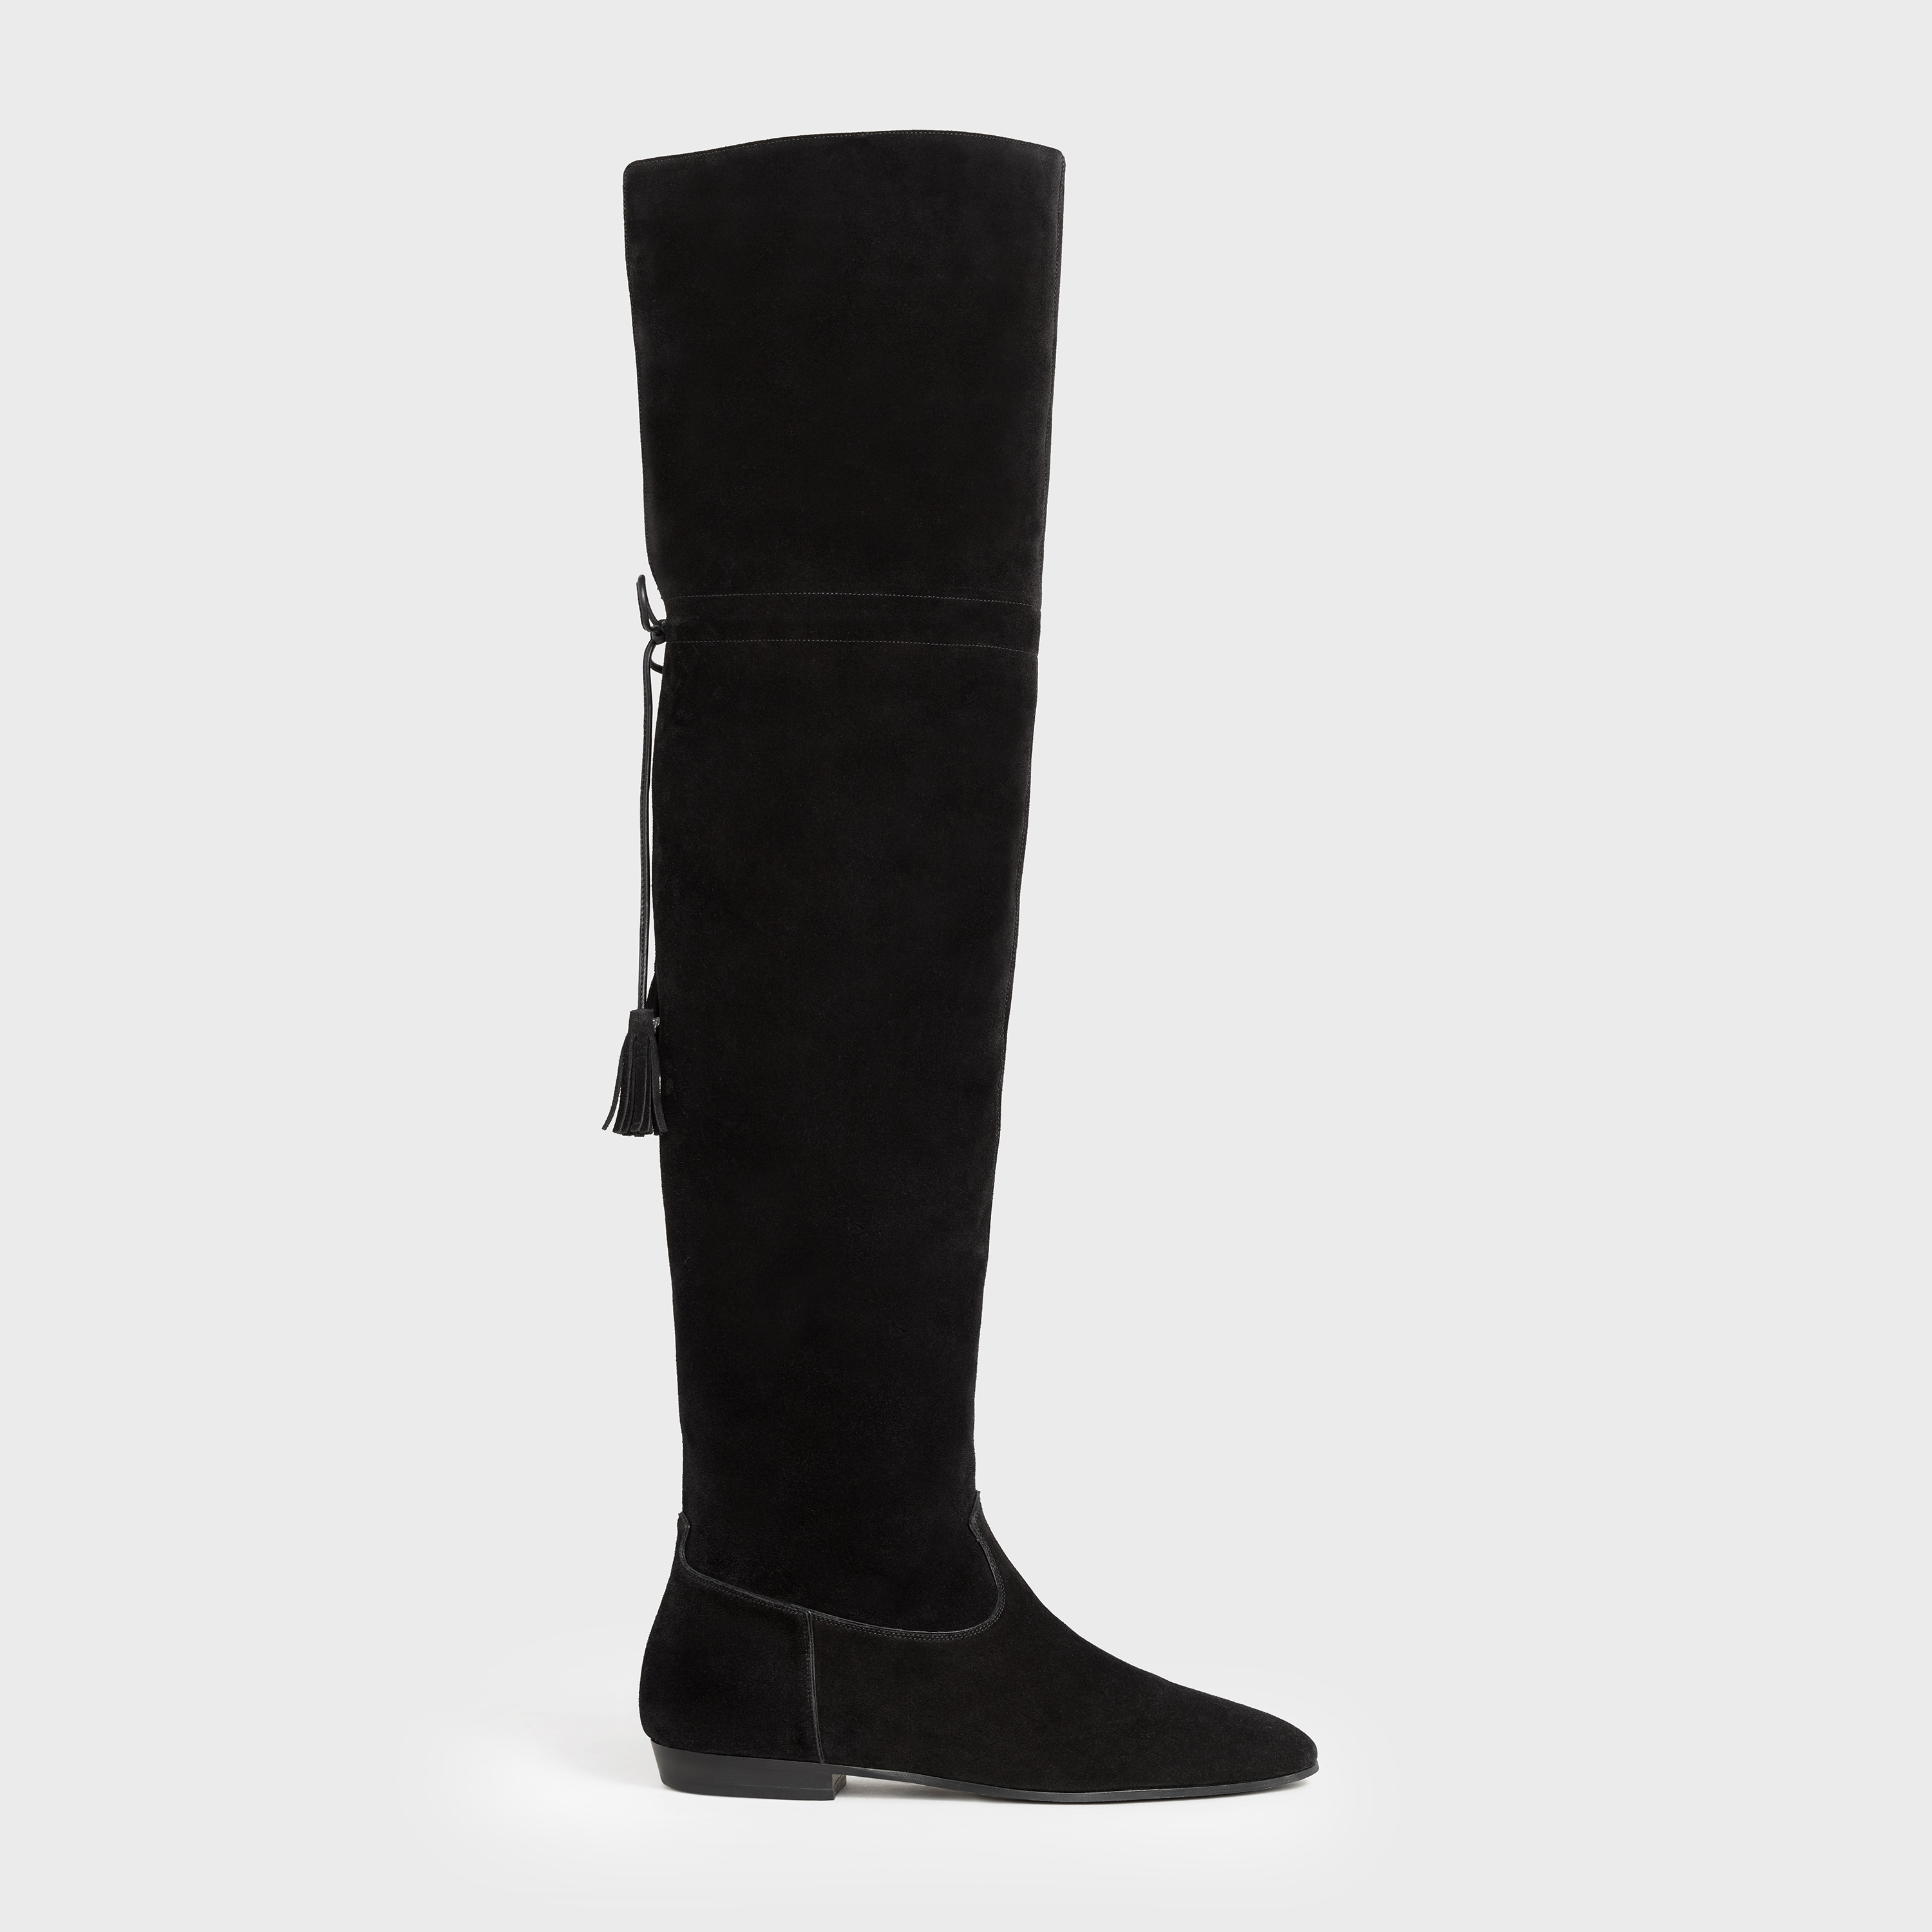 Chat Botté Over-The-Knee Flat Boot in